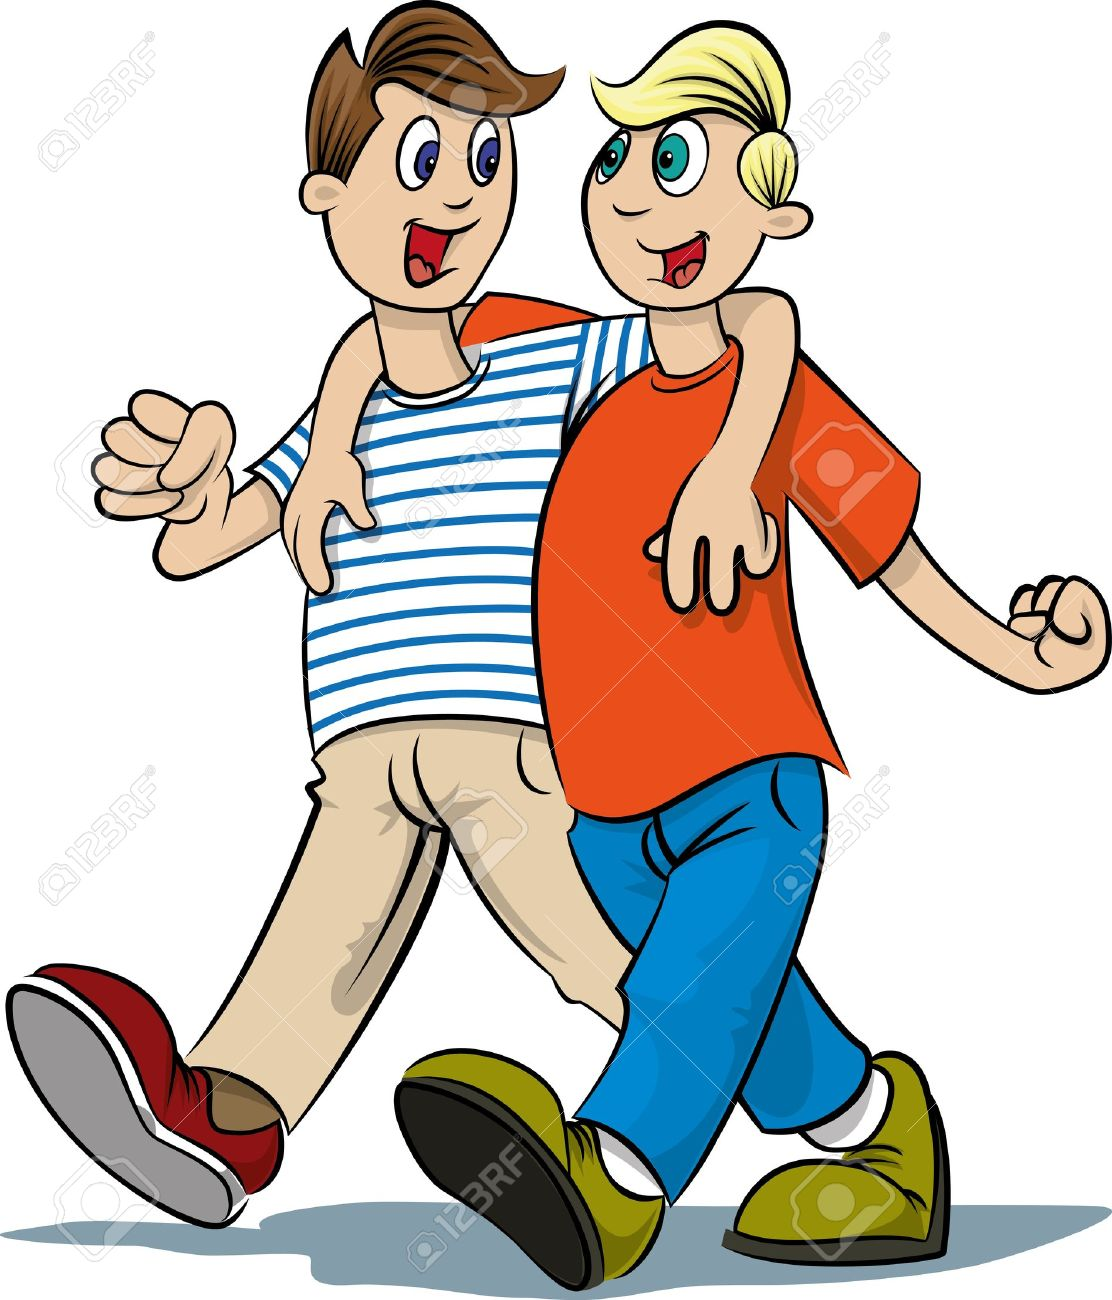 Two Boys Walking Royalty Free Cliparts, Vectors, And Stock.